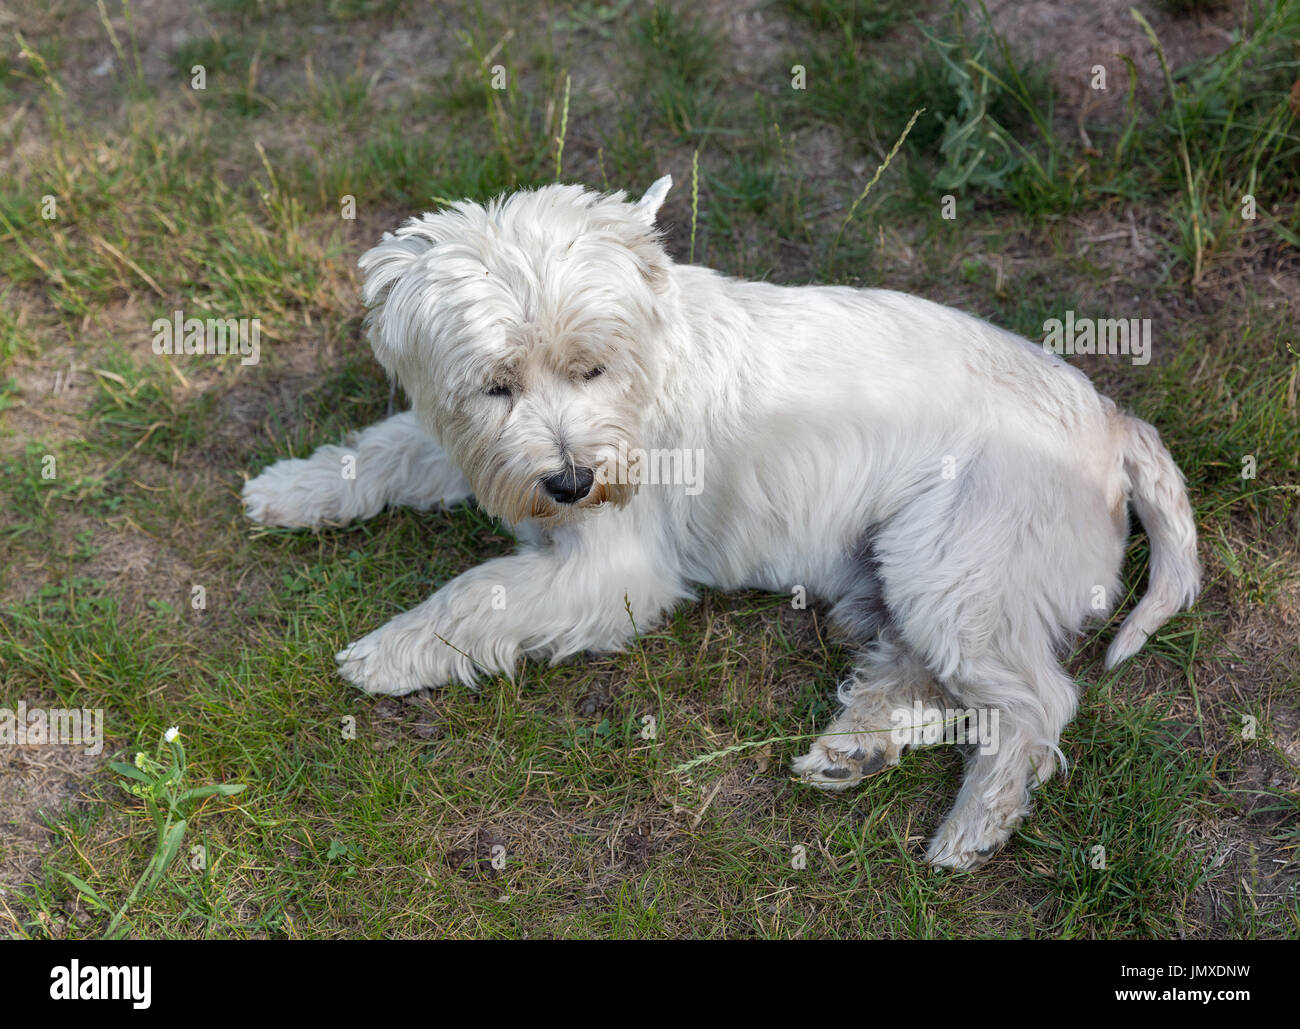 Westie dog lies on the groung closeup. West Highland White Terrier, commonly known as the Westie, a breed of dog from Scotland. - Stock Image